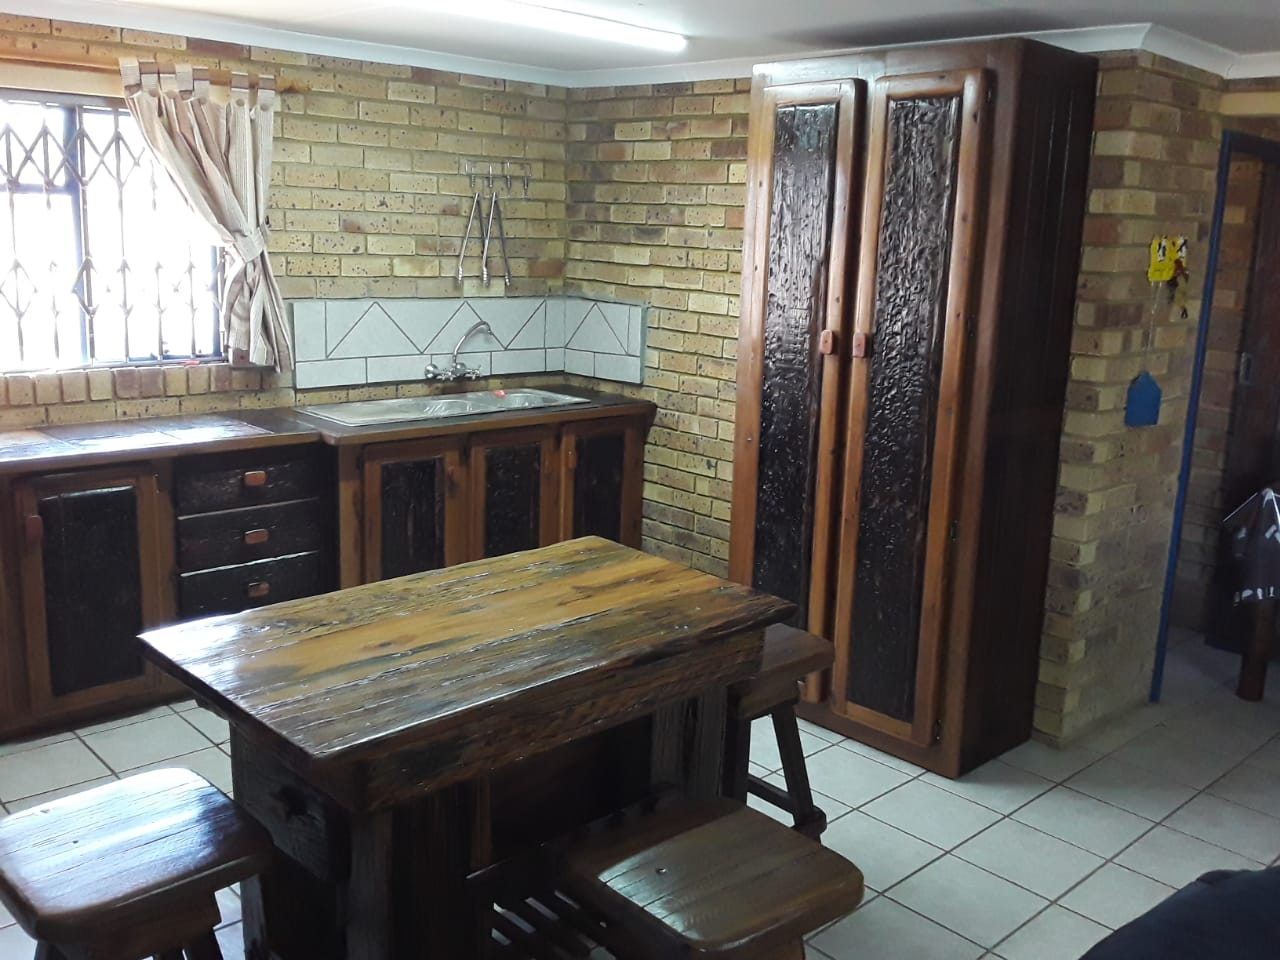 Kitchen work area and cupboards